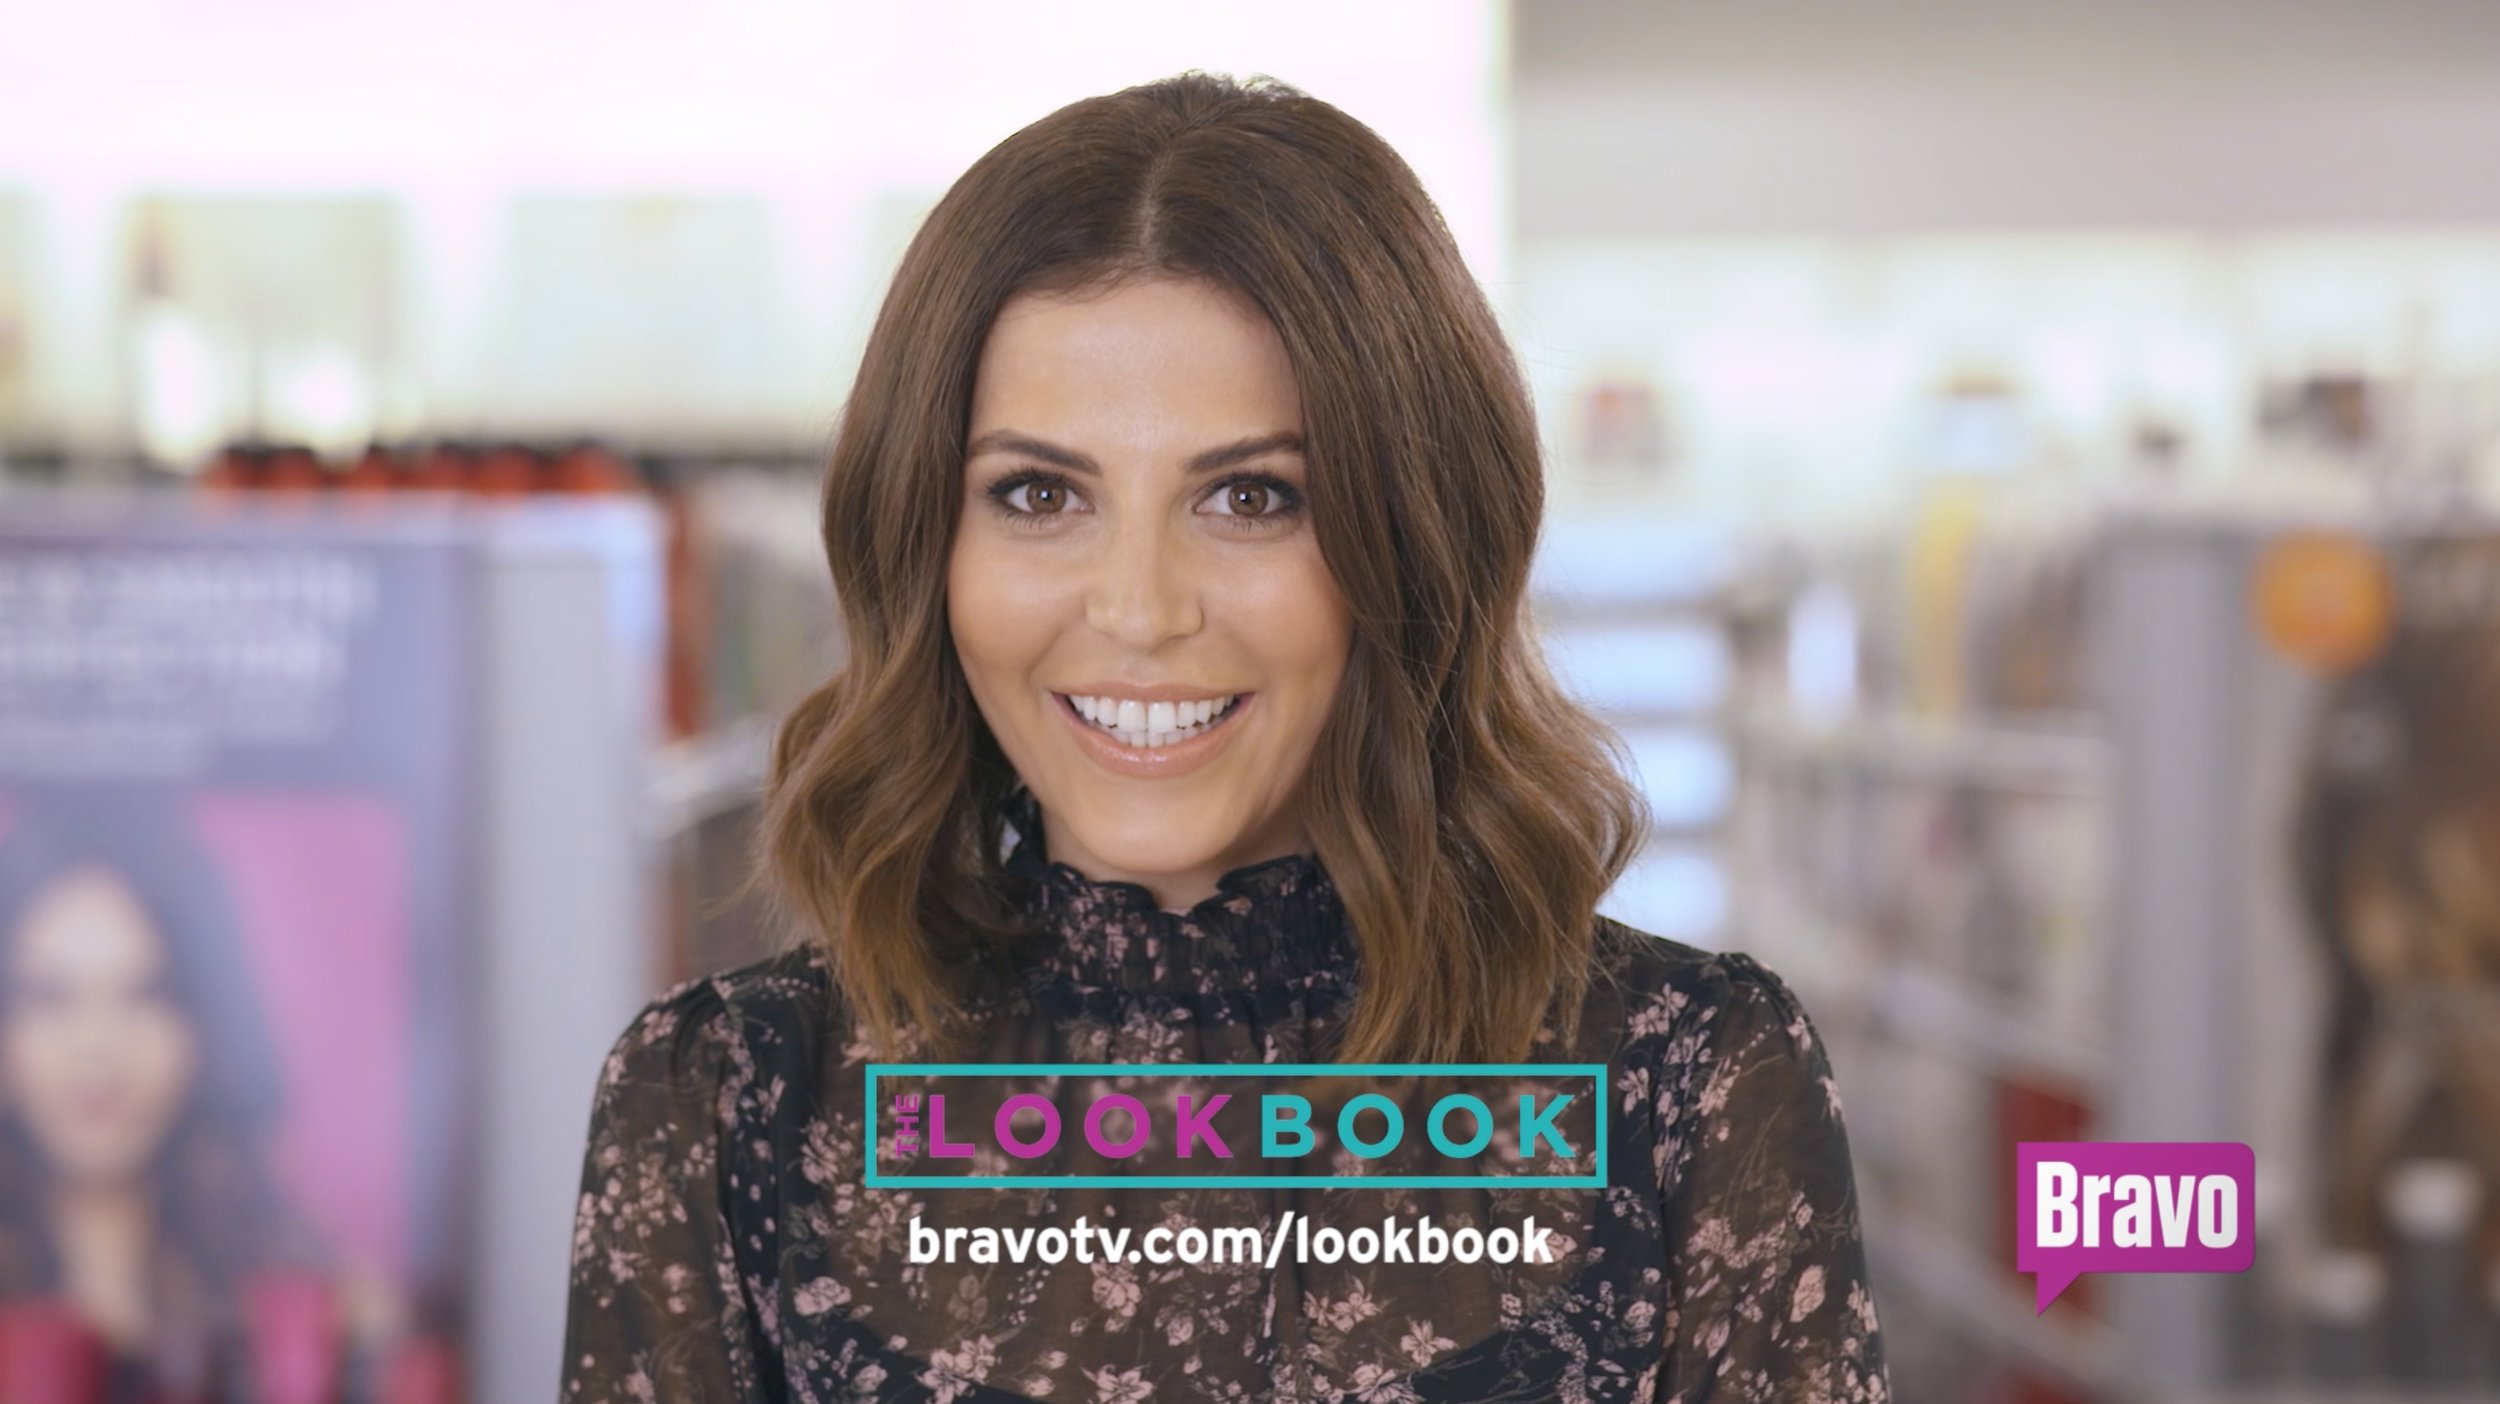 Bravo + ULTA   On-Air + Web Content //  The Lookbook    Creative, Shoot, Post Production